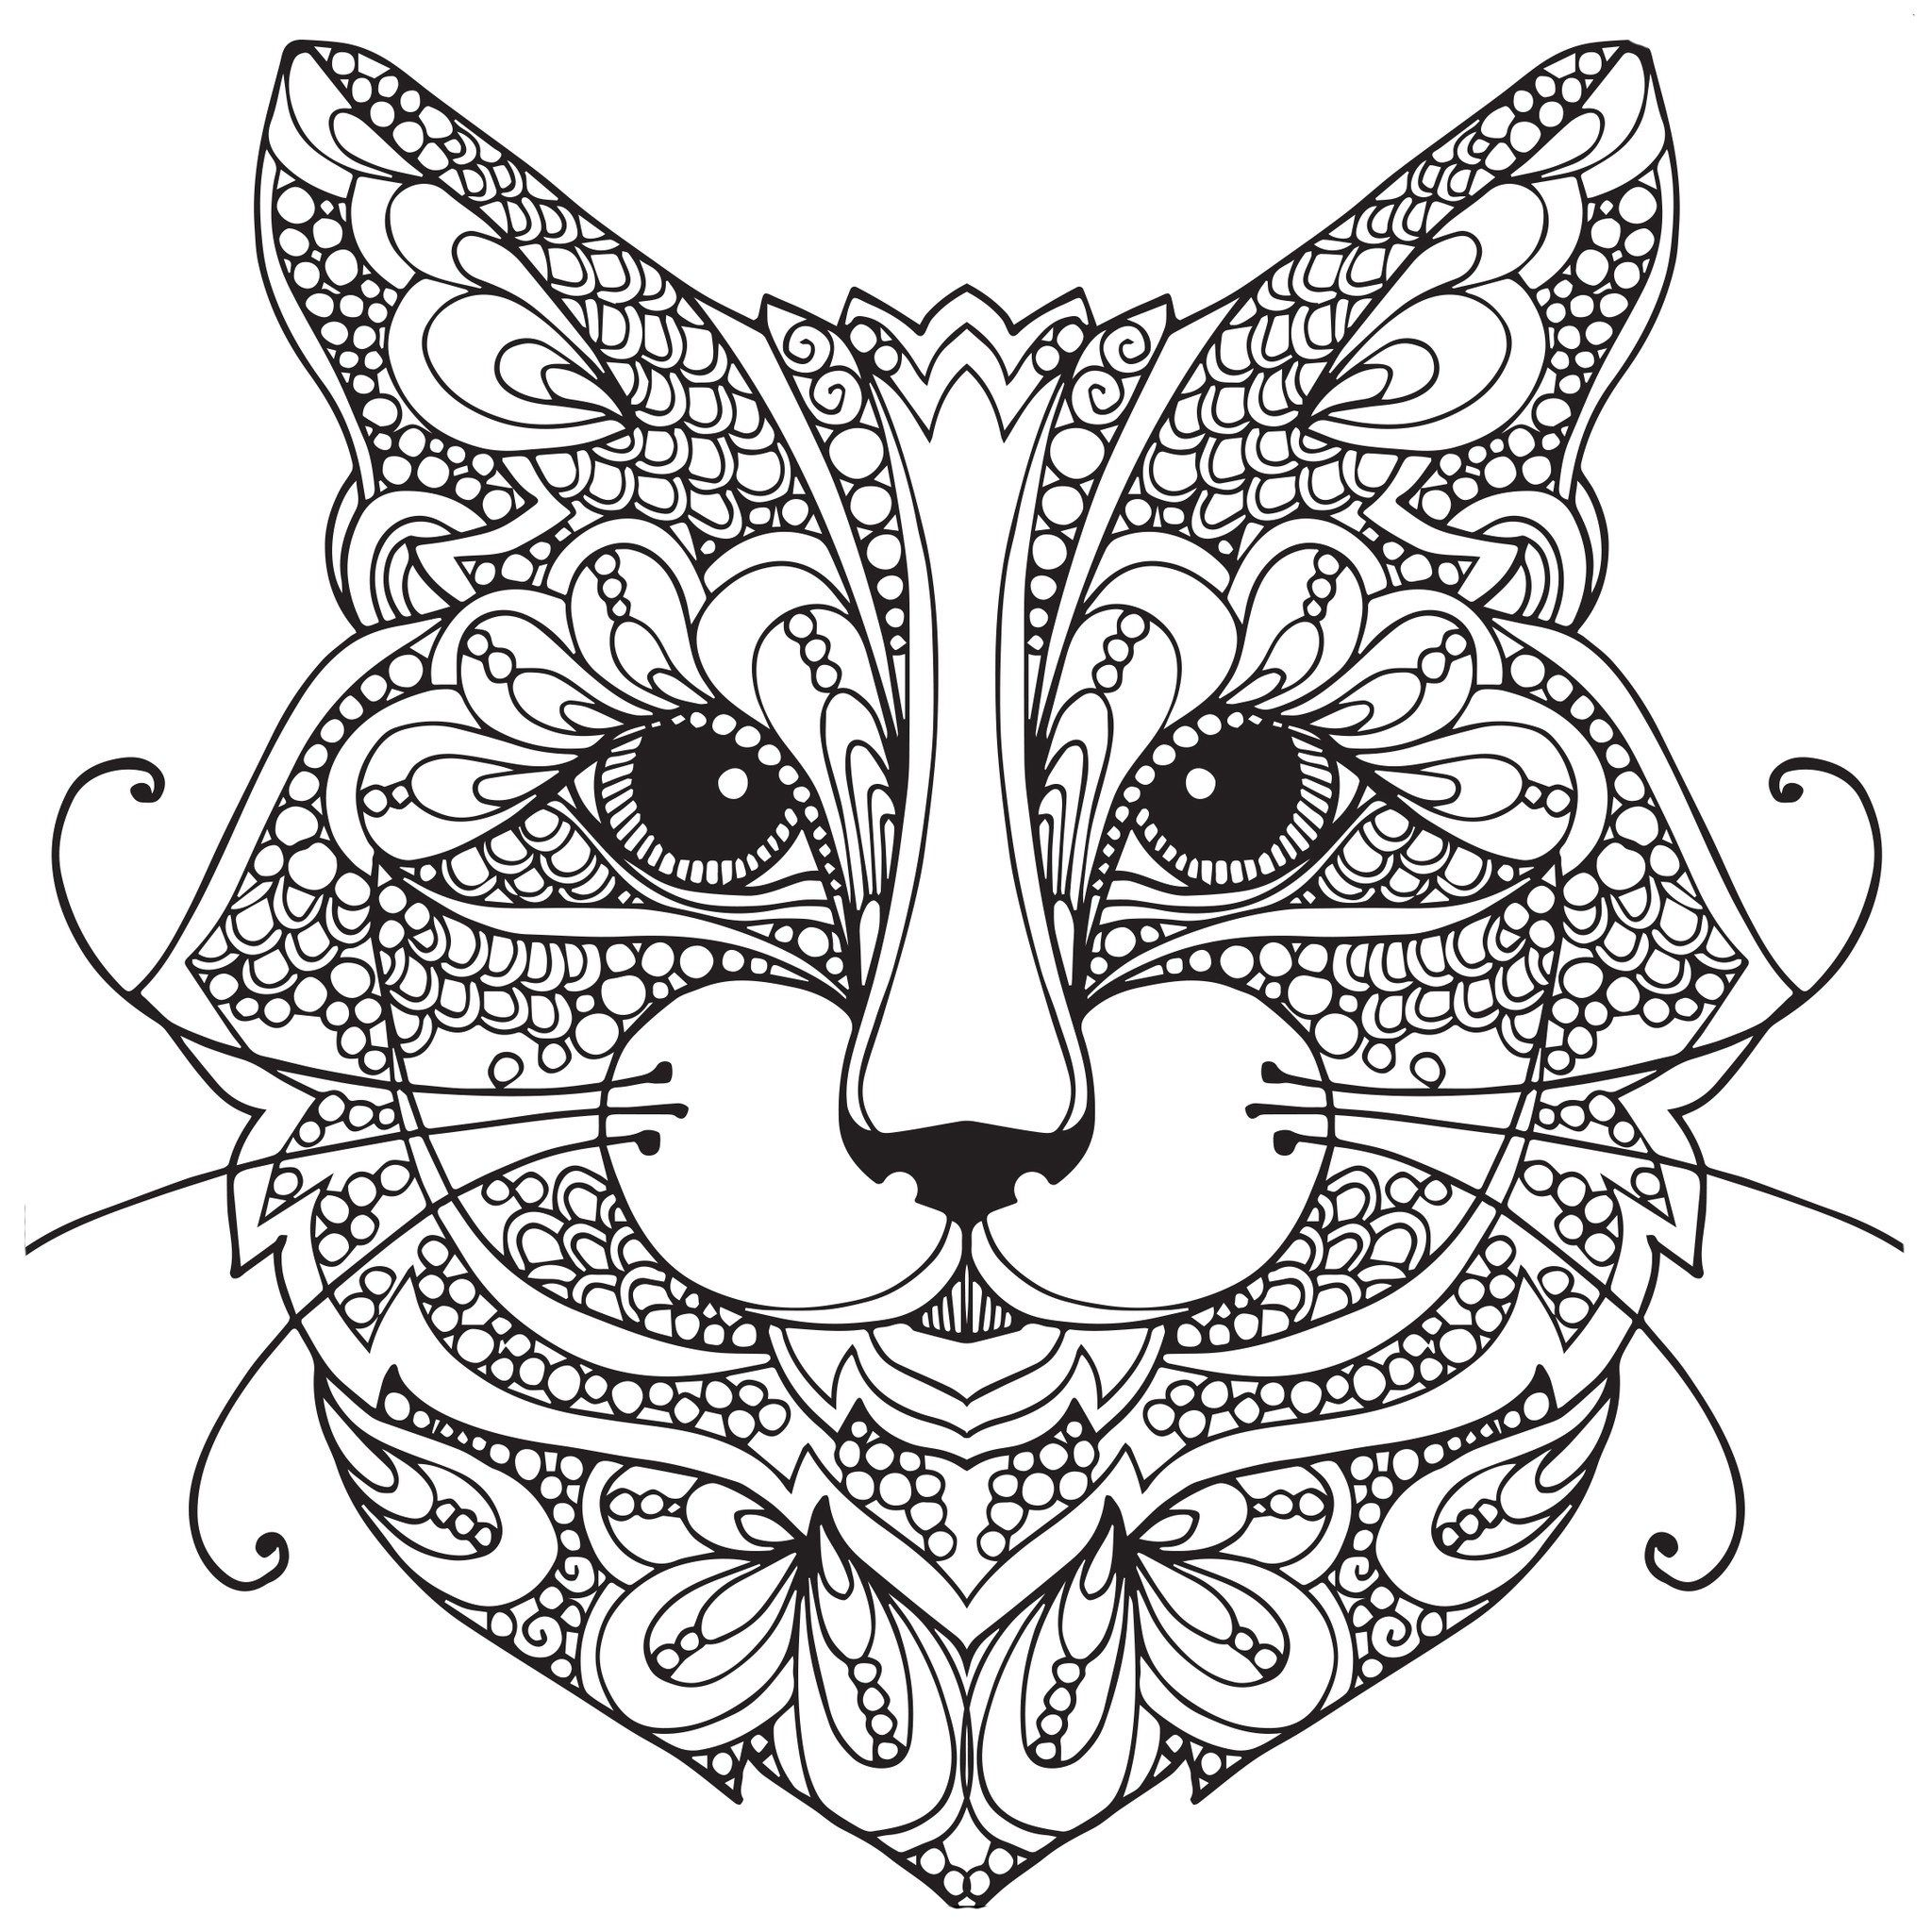 Coloring Pages For Adults: Adult Coloring Pages: Cat-1